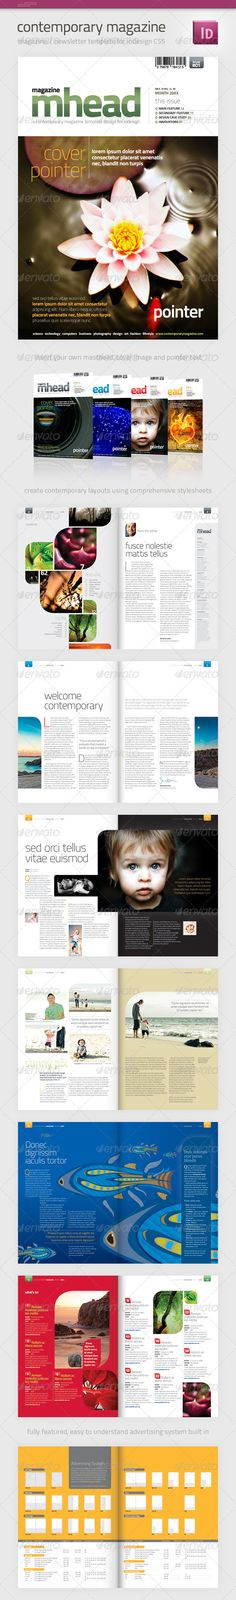 Inspiration Hut - 21 Of The Best Premium Magazine / Brochure Layout Downloads - Inspiration